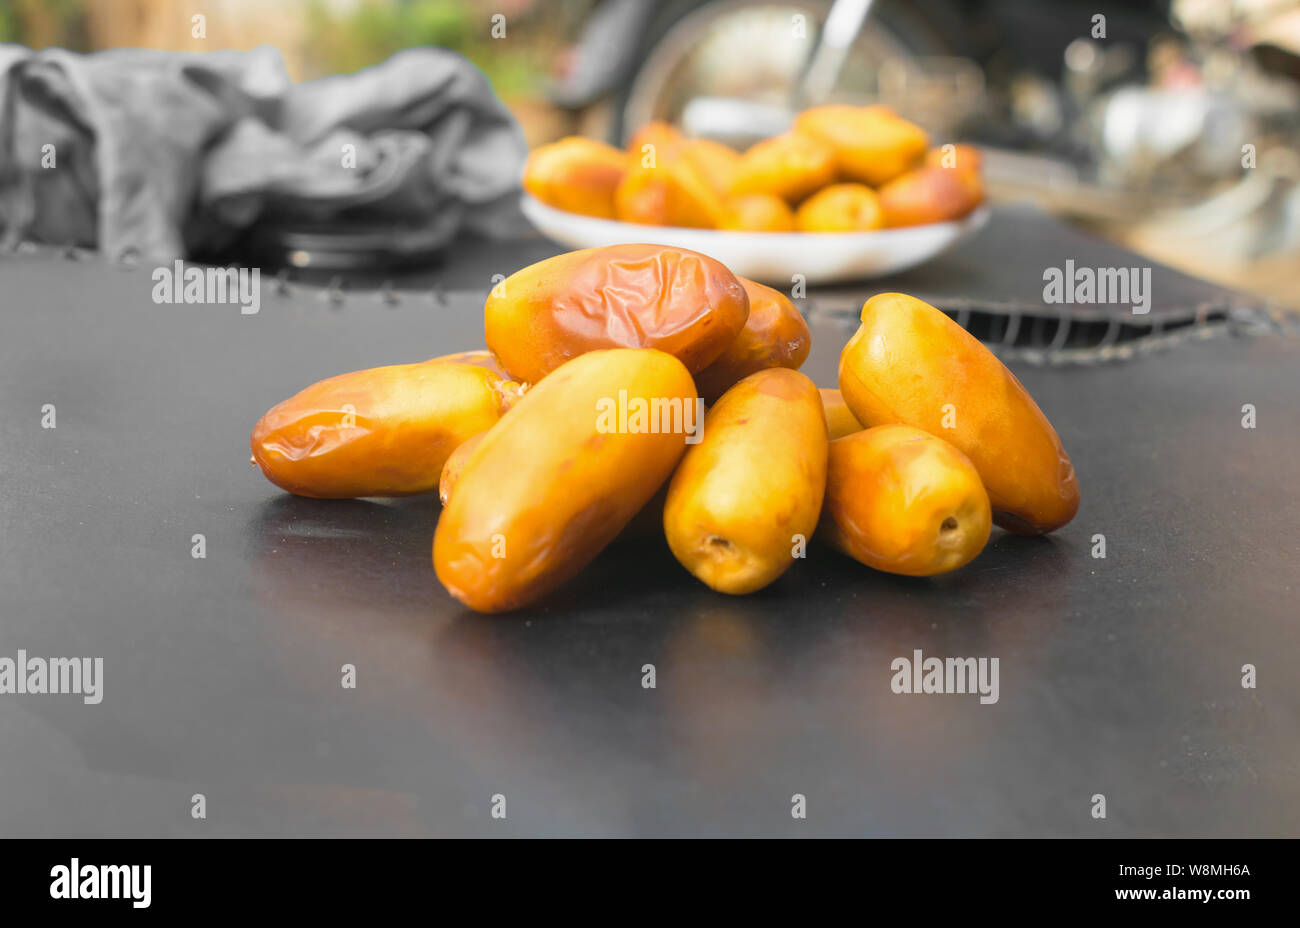 close up of fresh riped delicious  yellow dates  on black background. Stock Photo